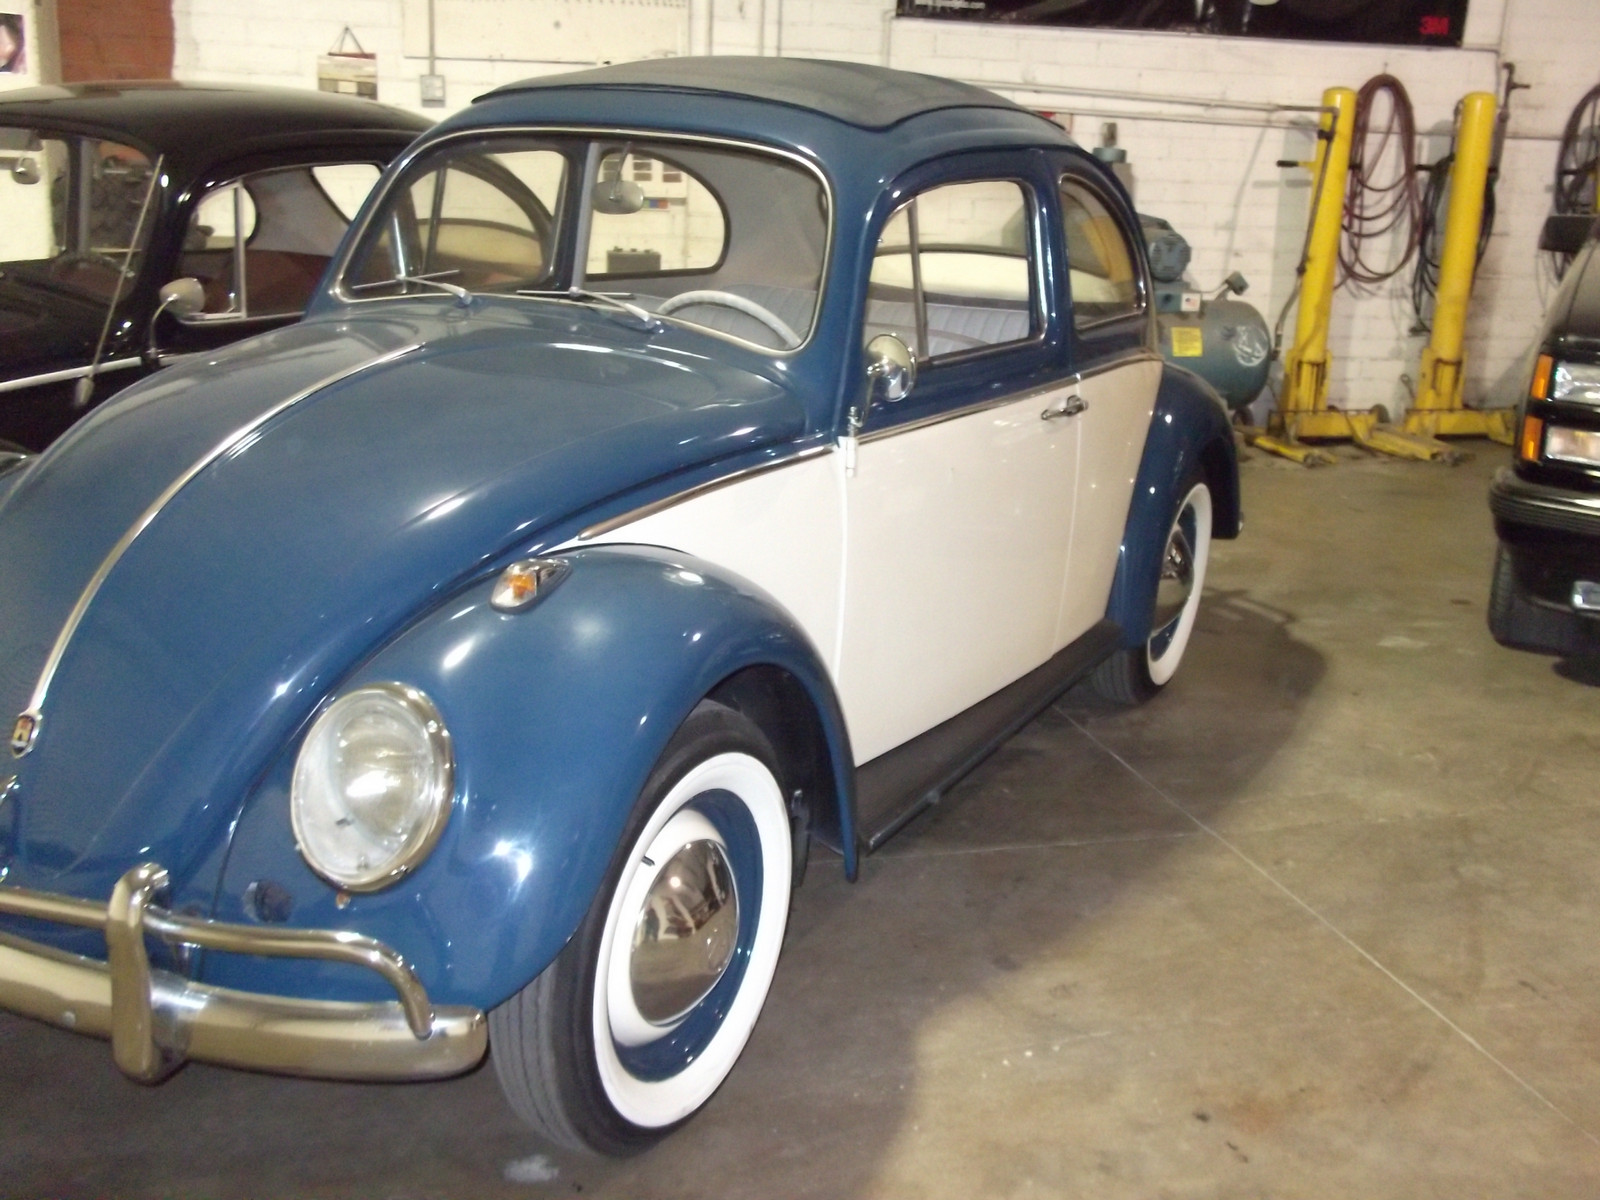 Vw Specialist Near Me >> Best Classic Car Shop Specialist Near Me In Los Angeles